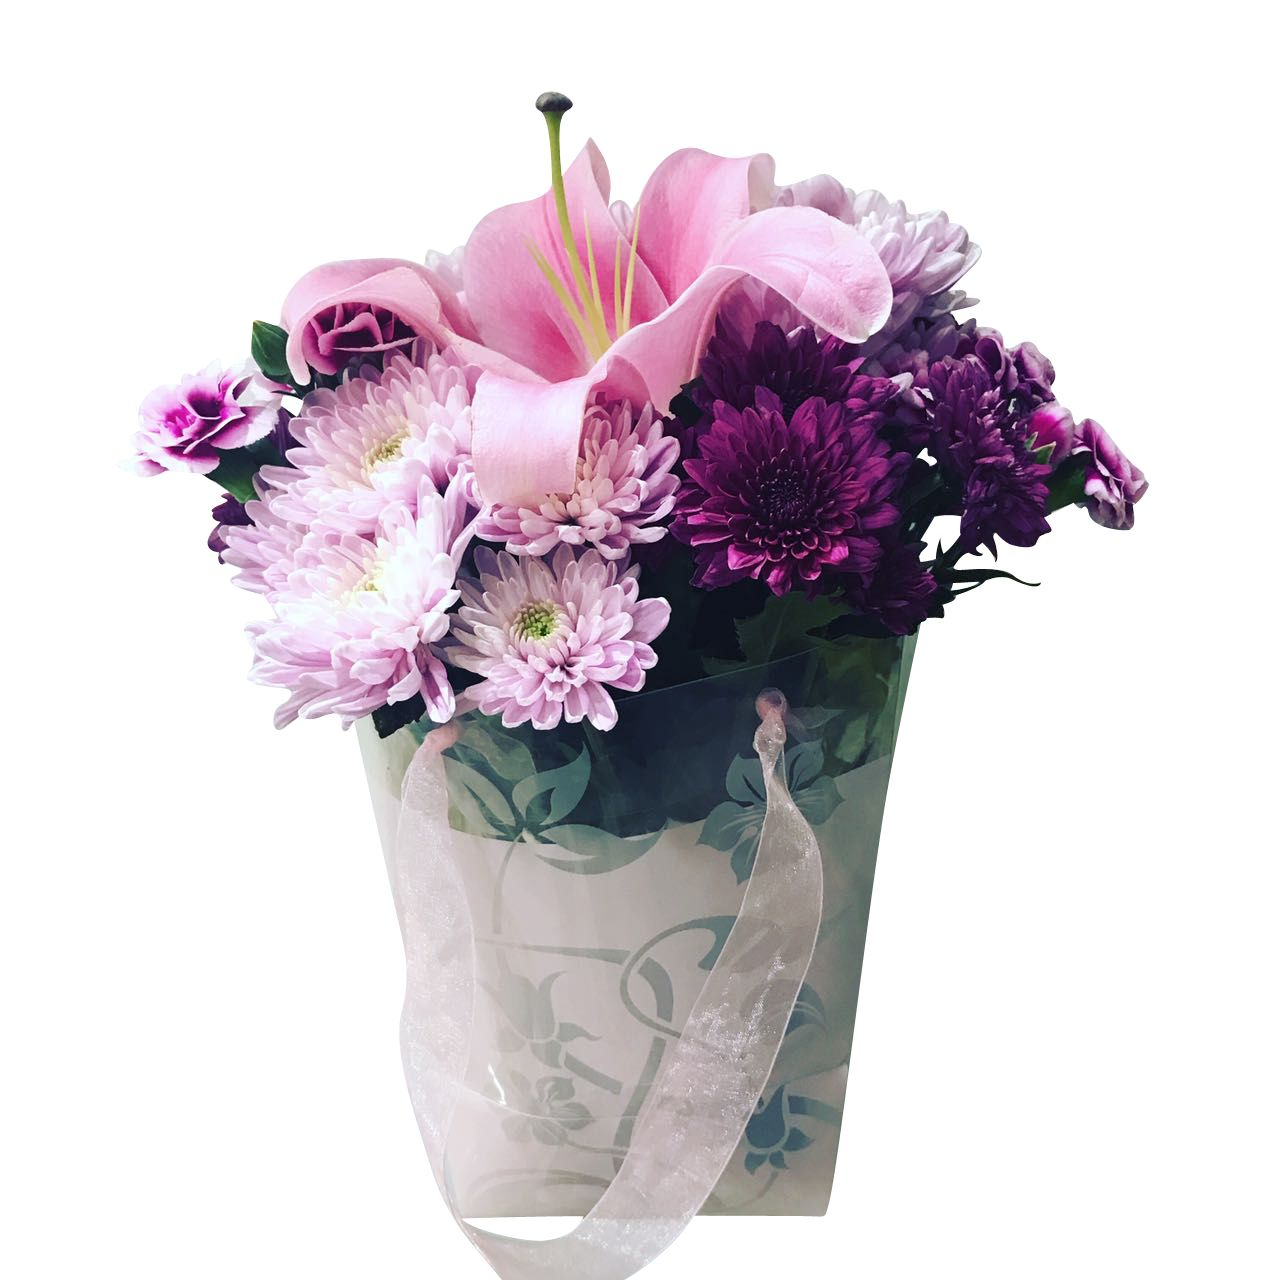 Are you looking flowers delivery online in South Yarra